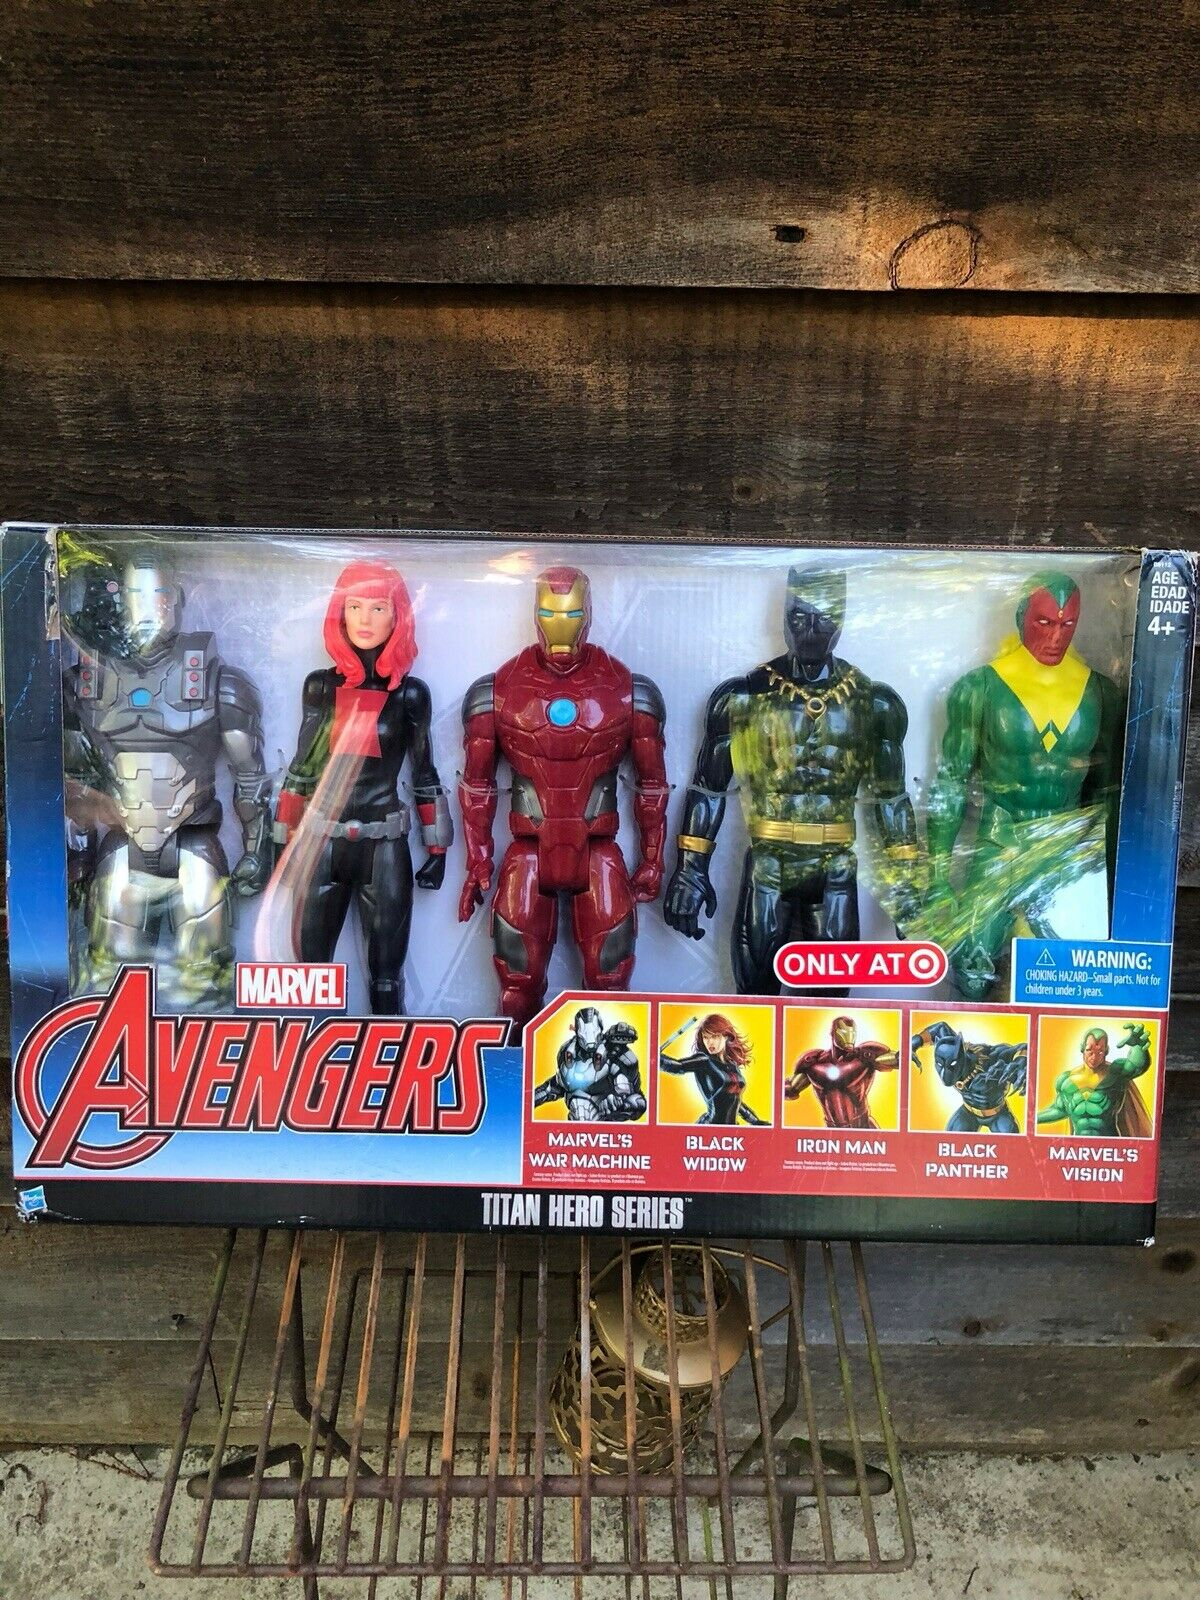 Avengers 5 Figurine Titan Hero Series Set Sold Only At Target